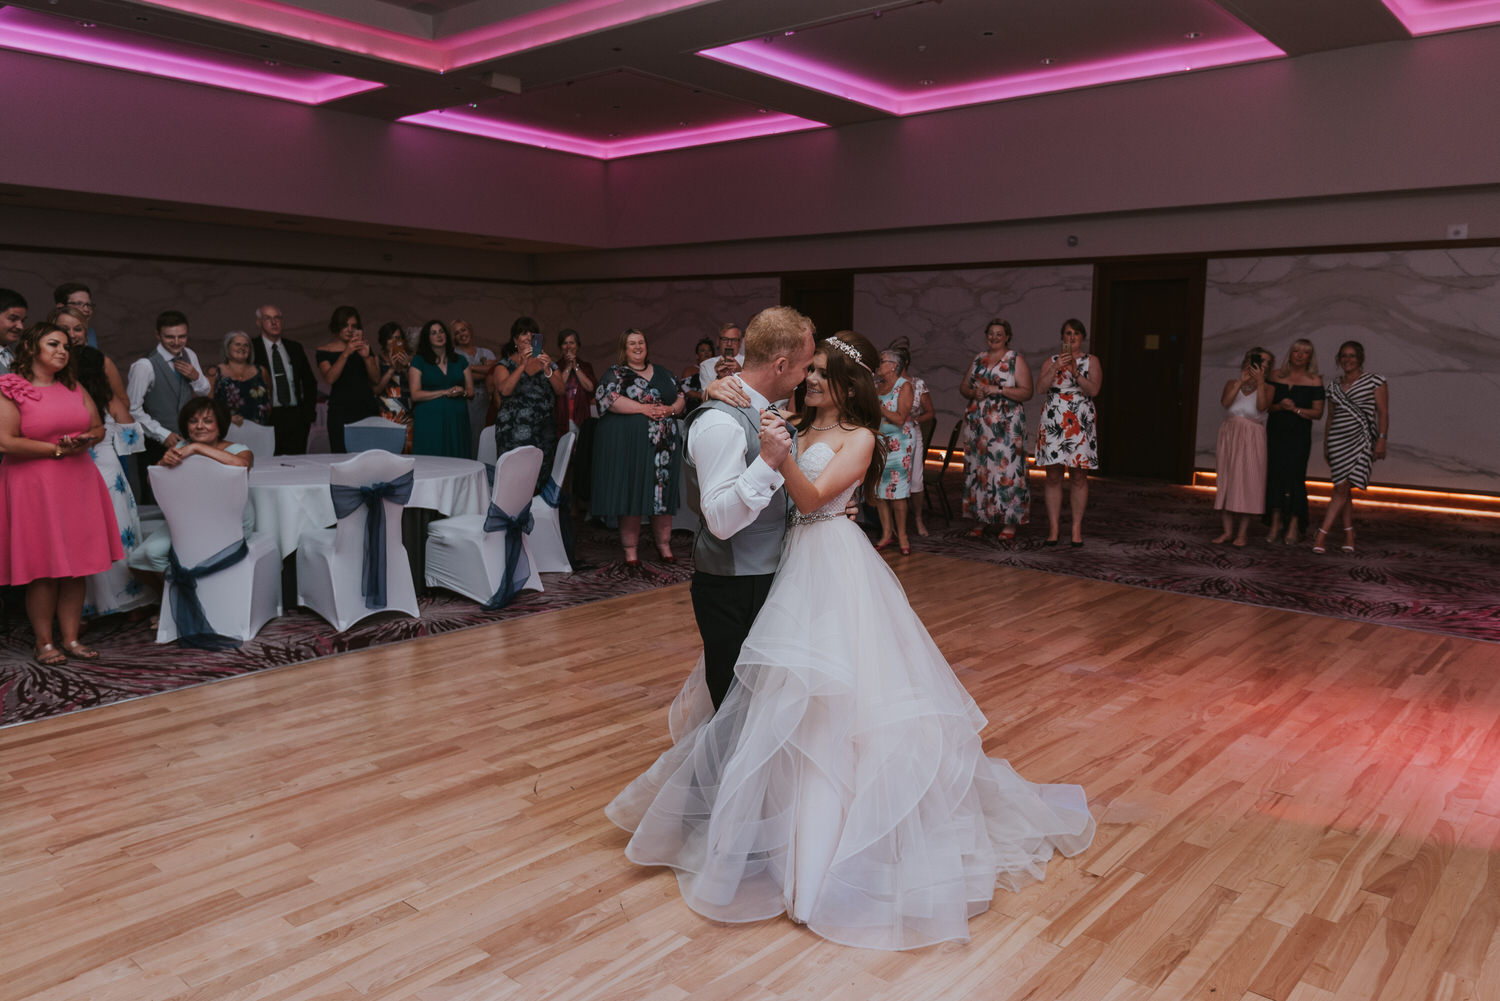 Stormont Hotel Wedding the first dance